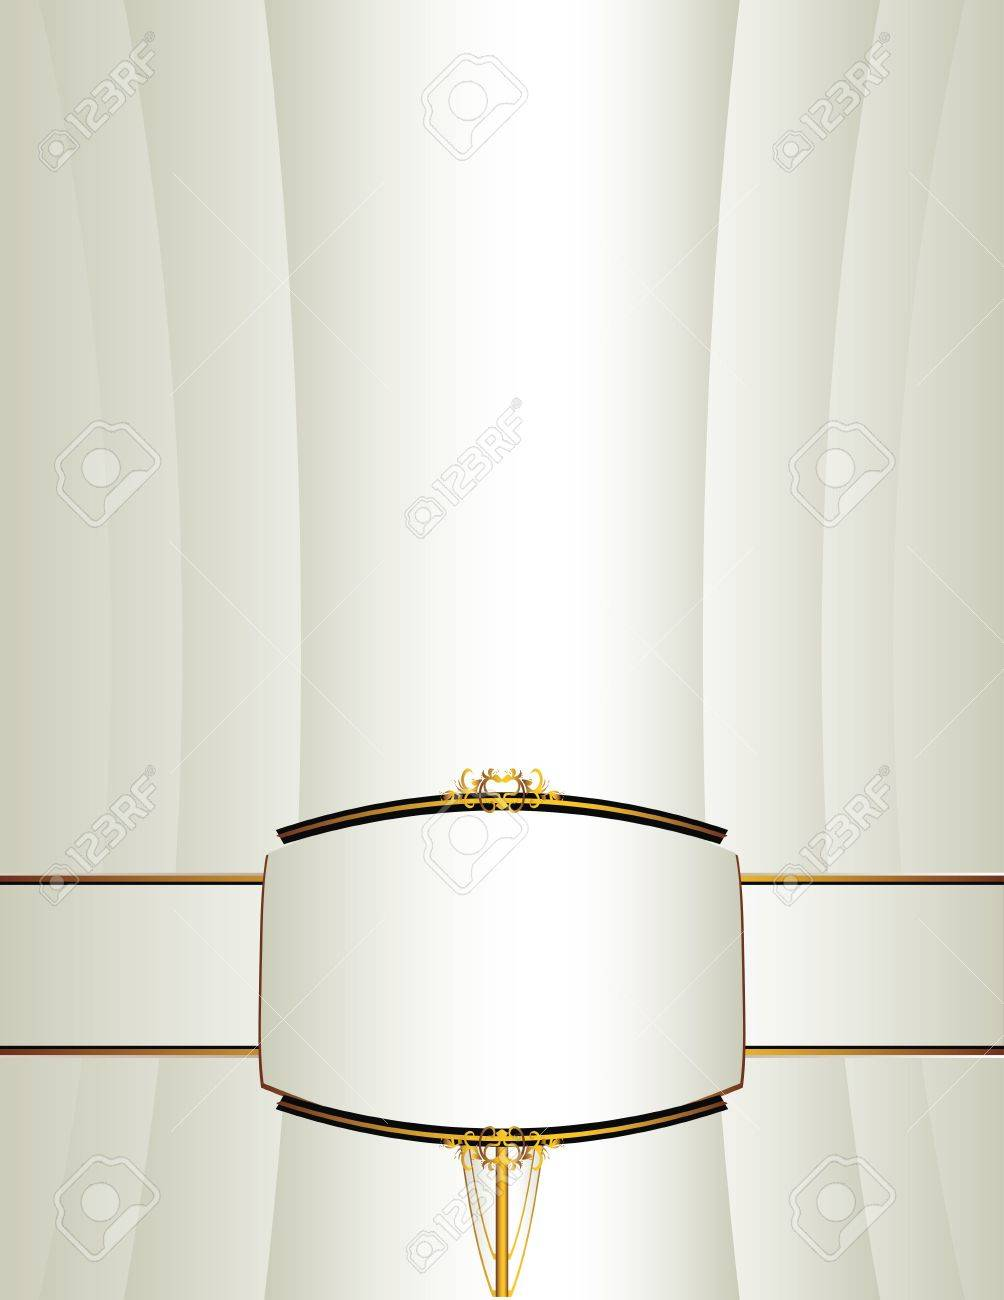 Background with a gold and black frame and band on lower portion Stock Vector - 7315153